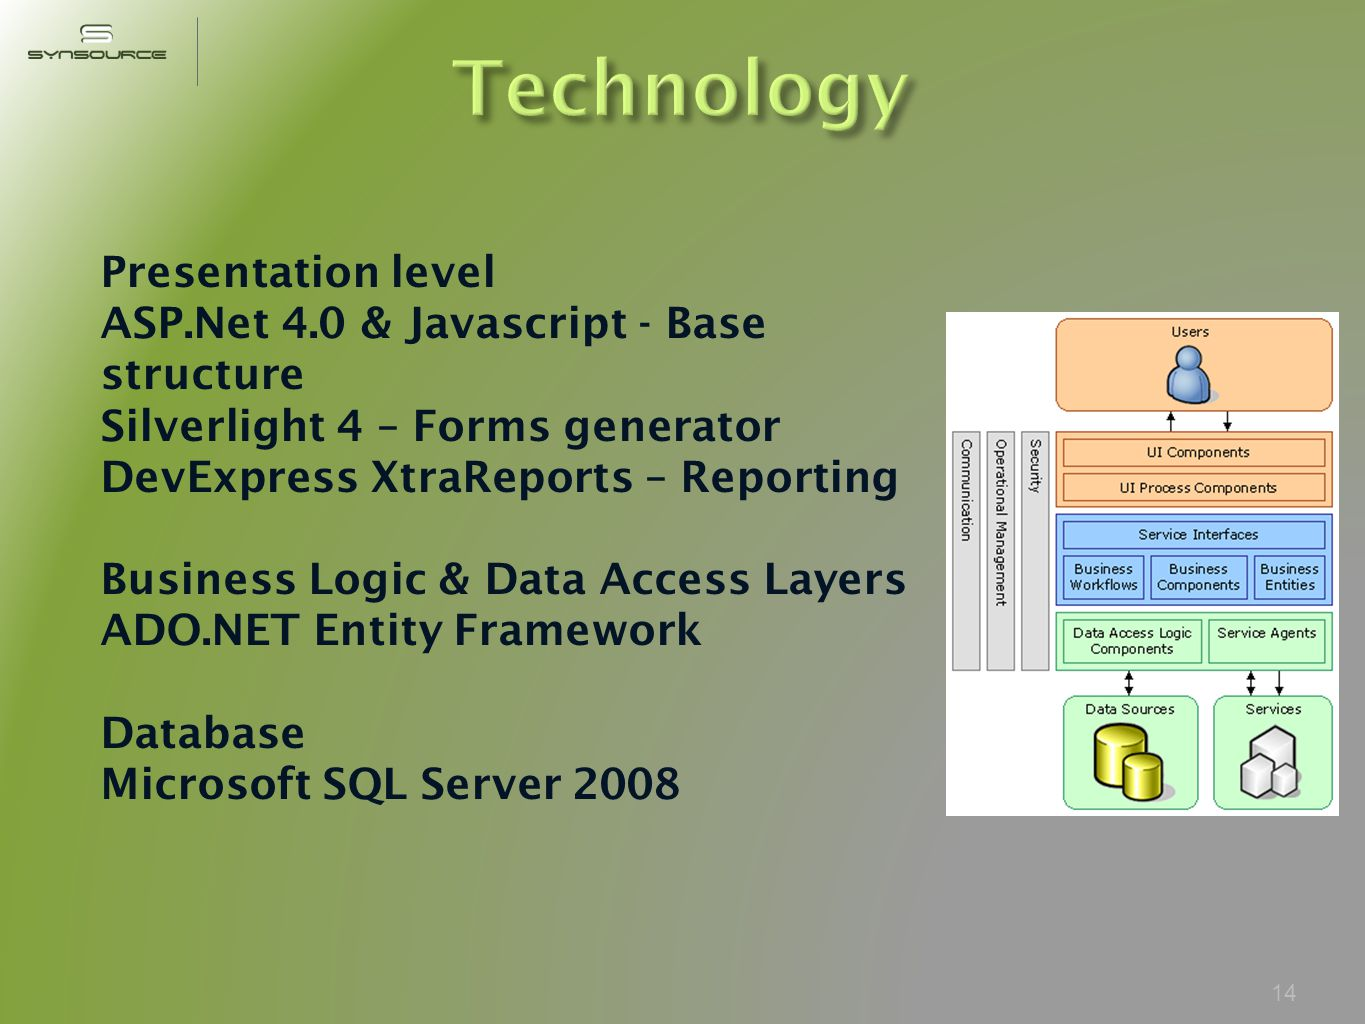 14 Presentation level ASP.Net 4.0 & Javascript - Base structure Silverlight 4 – Forms generator DevExpress XtraReports – Reporting Business Logic & Data Access Layers ADO.NET Entity Framework Database Microsoft SQL Server 2008